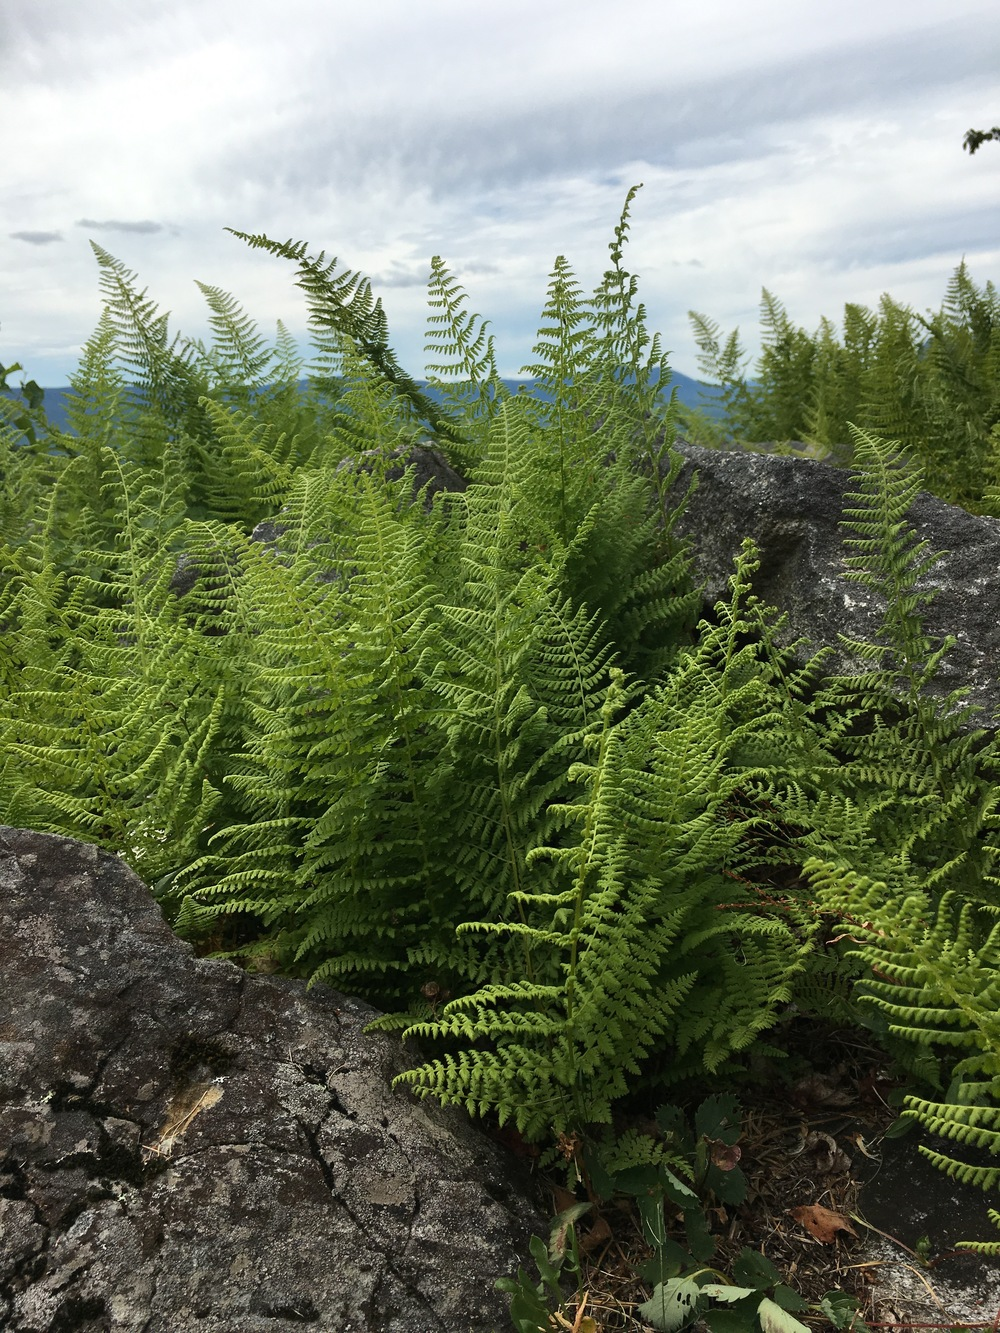 DAY 3: Appreciating Ferns at Mount Blue State Park